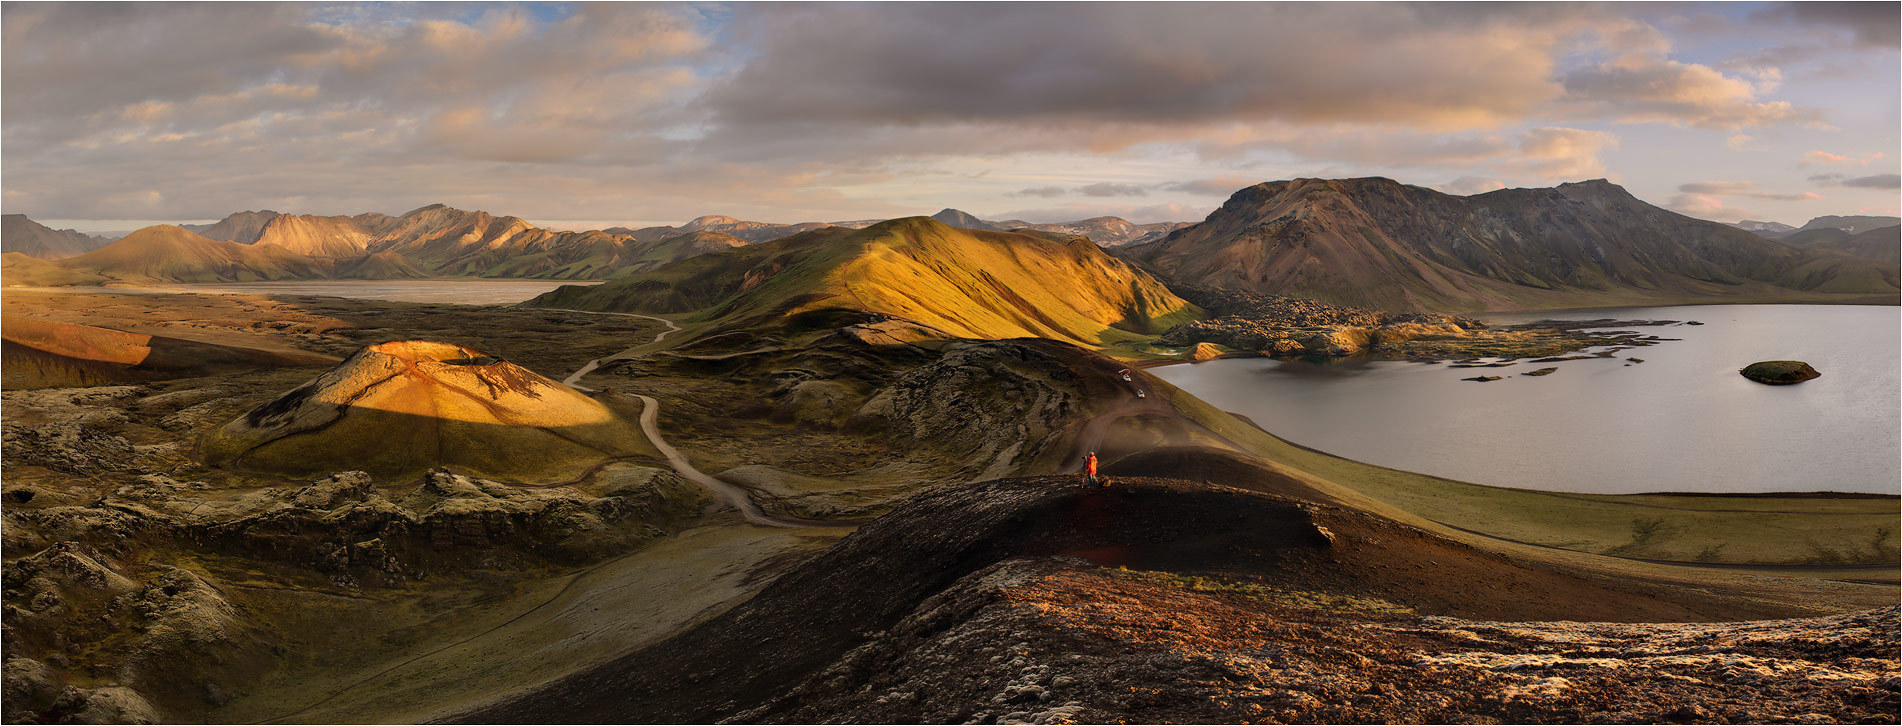 Evening panorama, Iceland | Iceland, landscape, panorama, evening, hills, sunshine, water, mountains, clouds , sunset